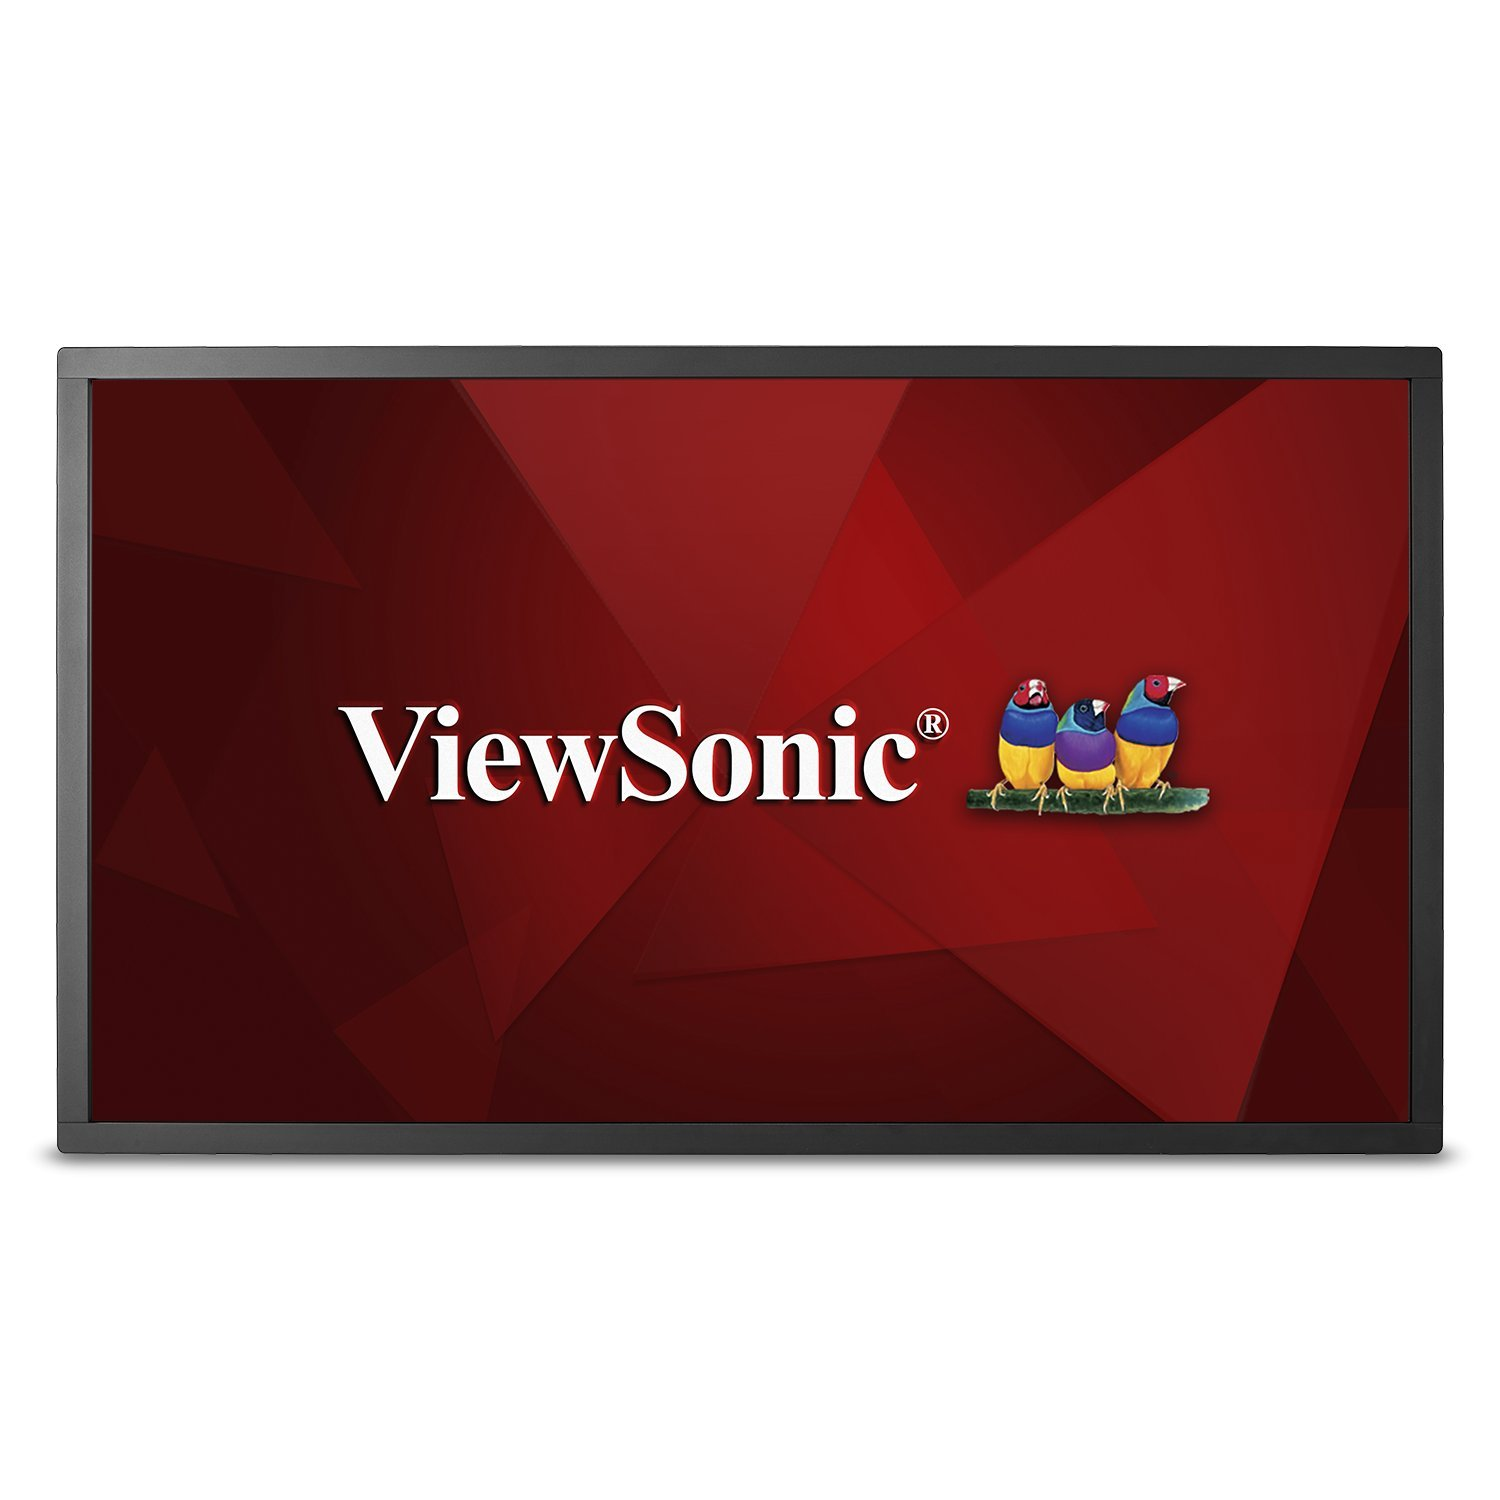 ViewSonic CDM4300T 43'' 1080p 10-Point Multi Touch Commercial Display with Quad-Core Media Player, HDMI, DVI by ViewSonic